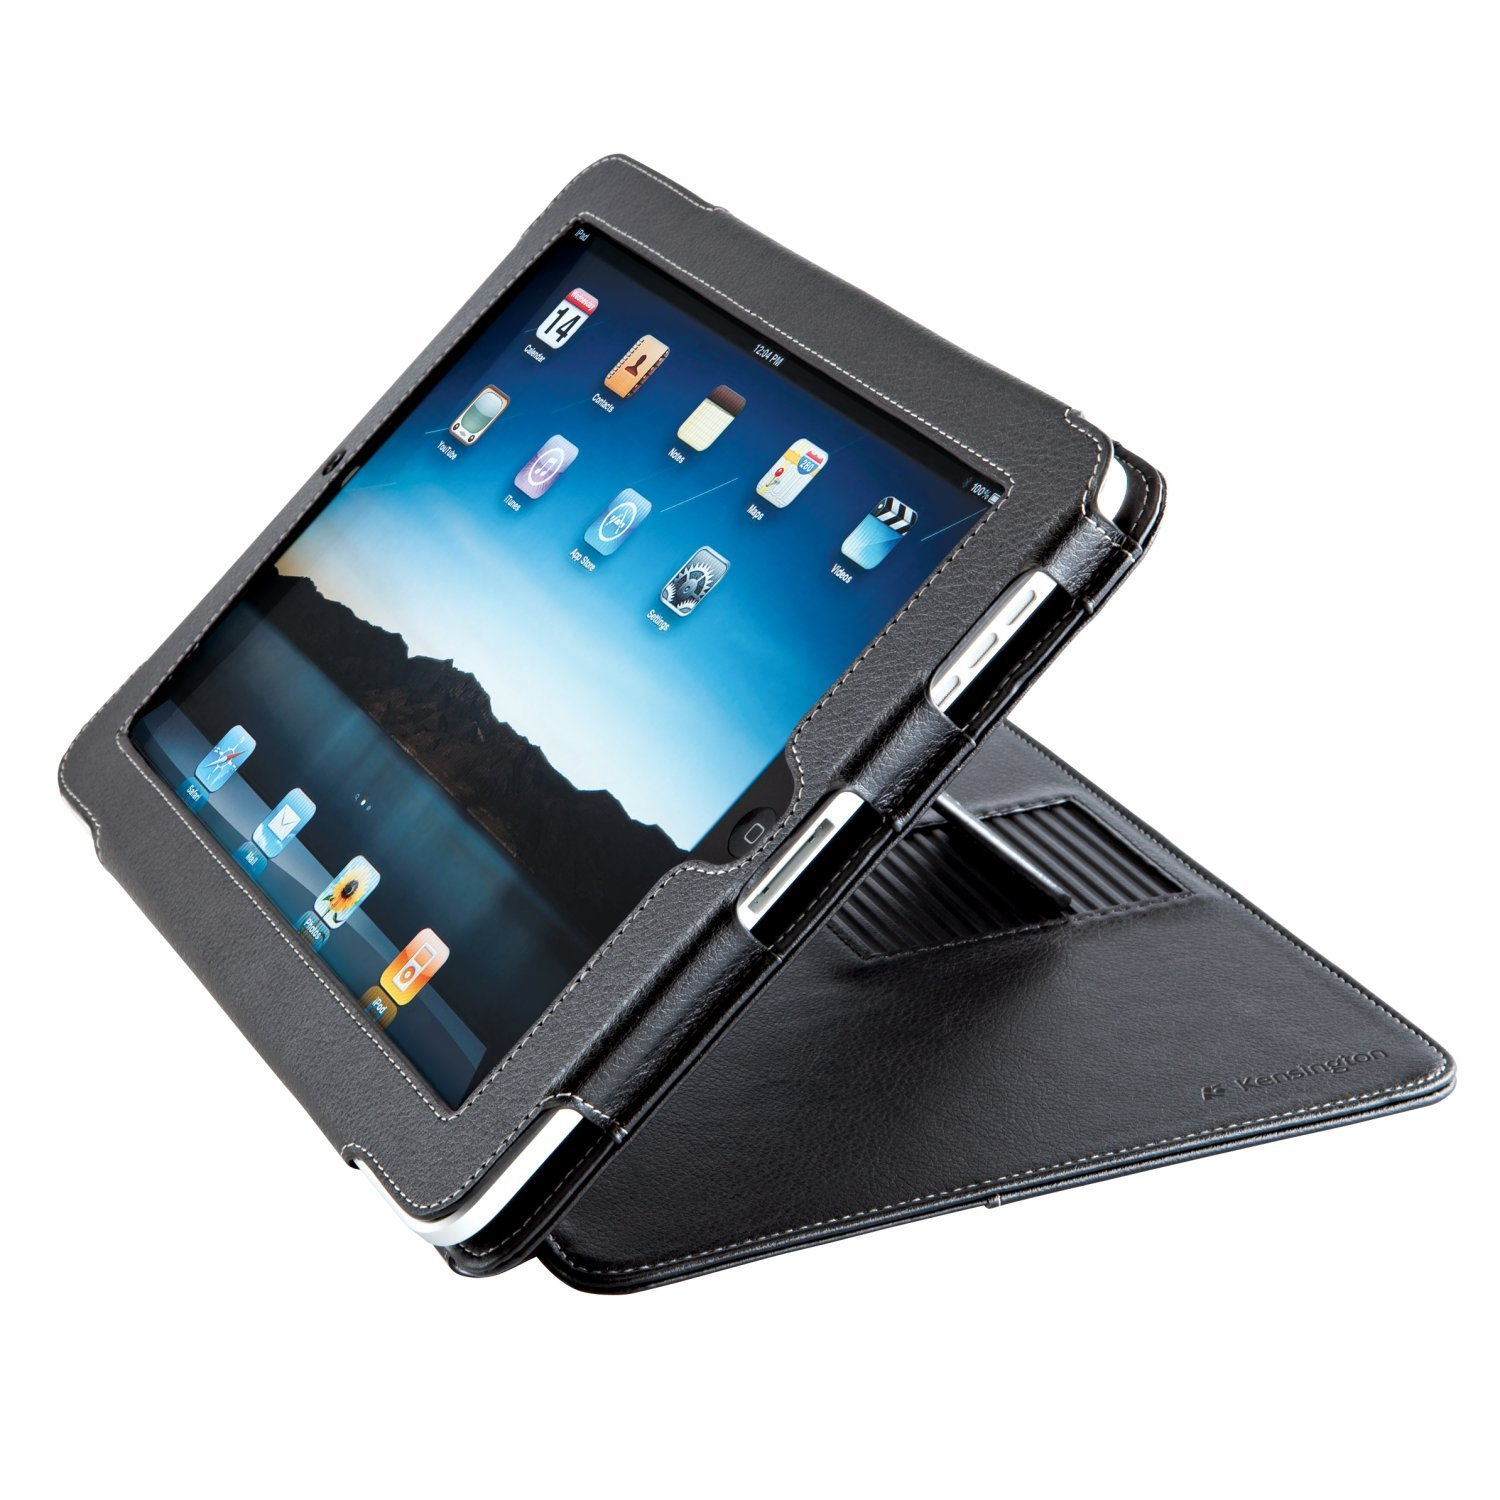 65c7ed135117 Cheap Ipad 1 Folio, find Ipad 1 Folio deals on line at Alibaba.com